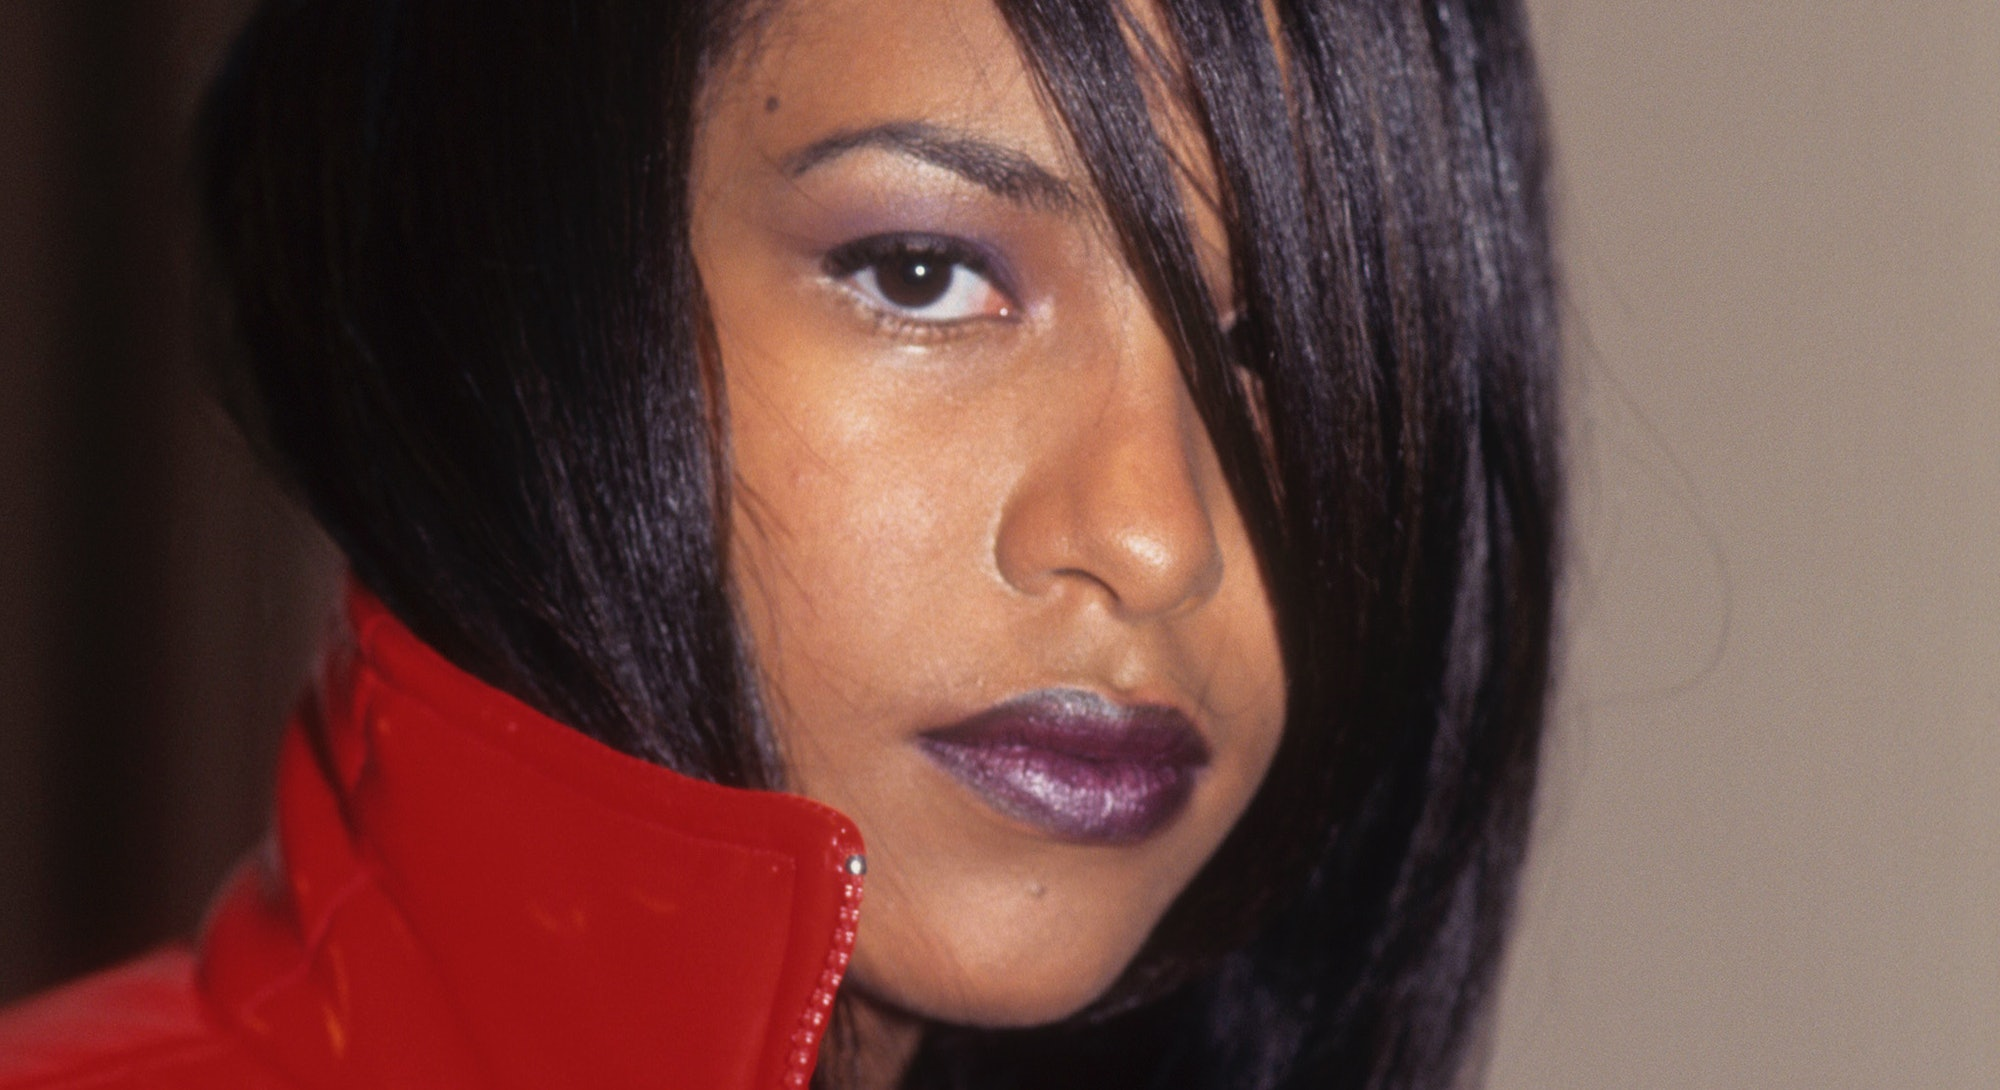 NEW YORK, NEW YORK--AUGUST 2: Musician Aaliyah appears in a portrait taken at the Vibe Magazine Fash...